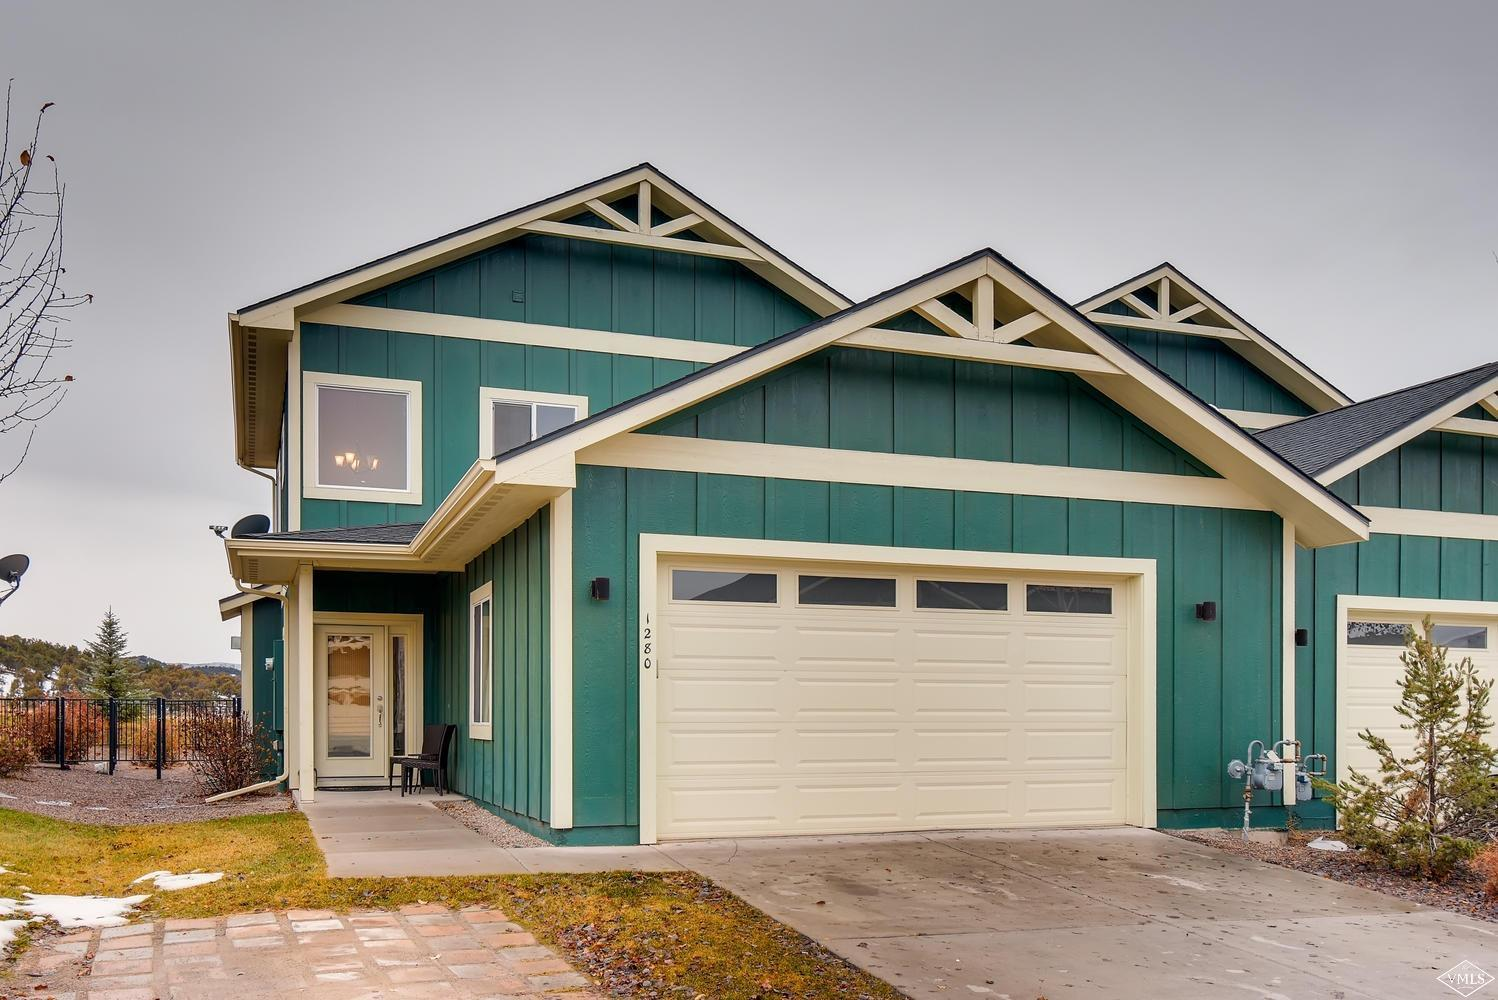 Main level master 3 bedroom duplex with a nice fenced yard. Large bedrooms, additional living area upstairs, oversized 2 car garage, wonderful views of the surrounding mountains. Ready to move in.